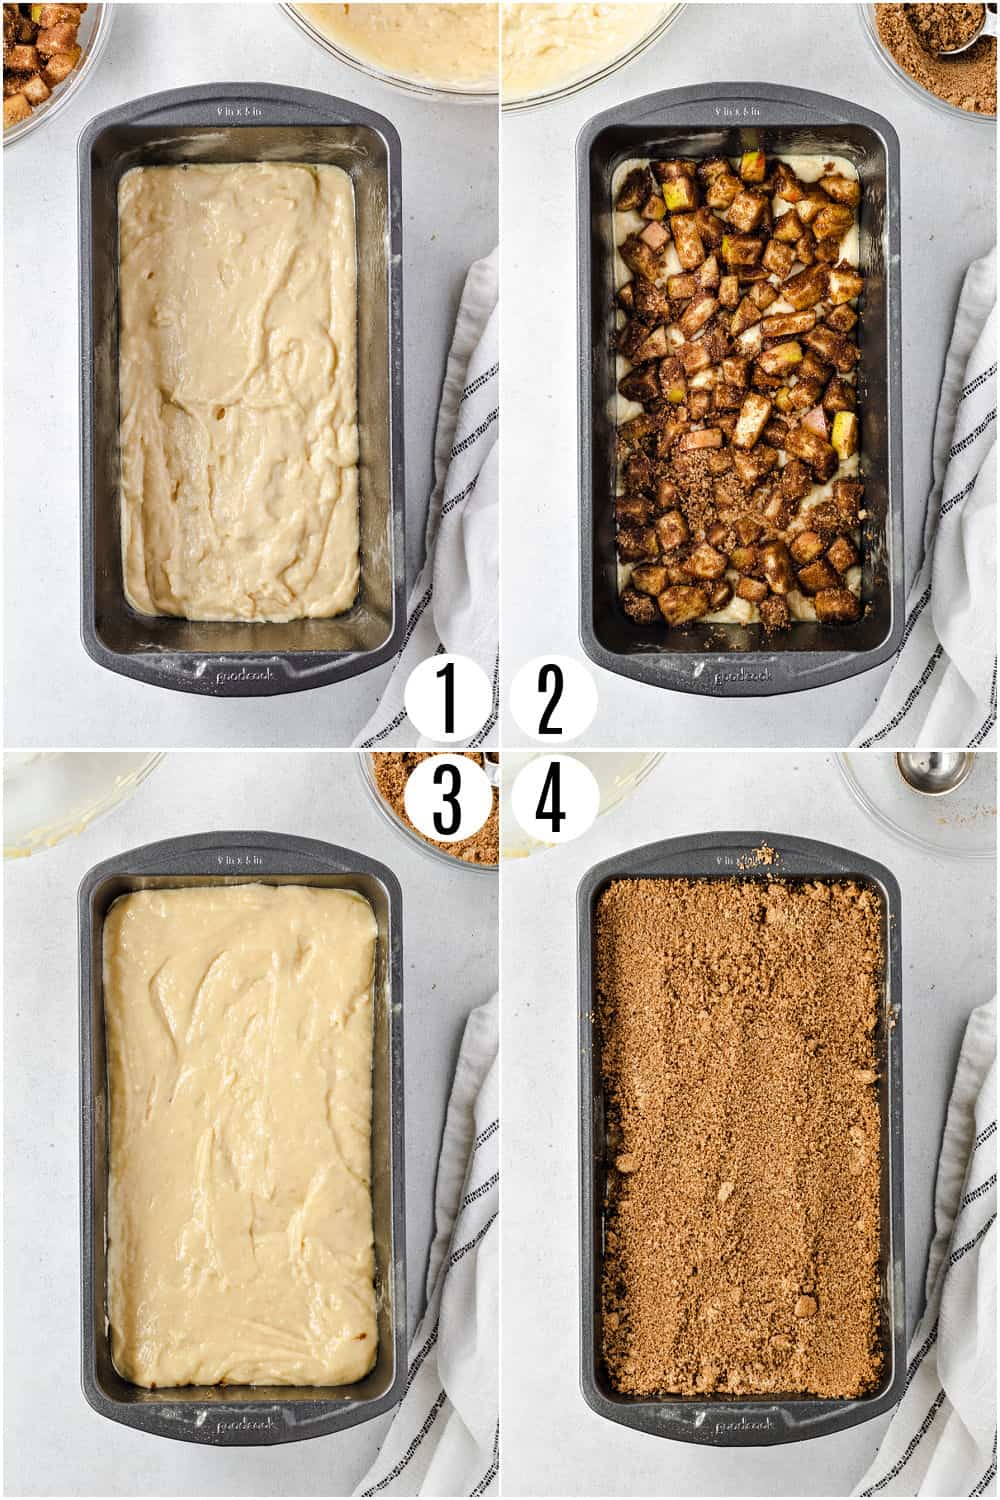 Step by step photos showing how to assemble apple chai bread.